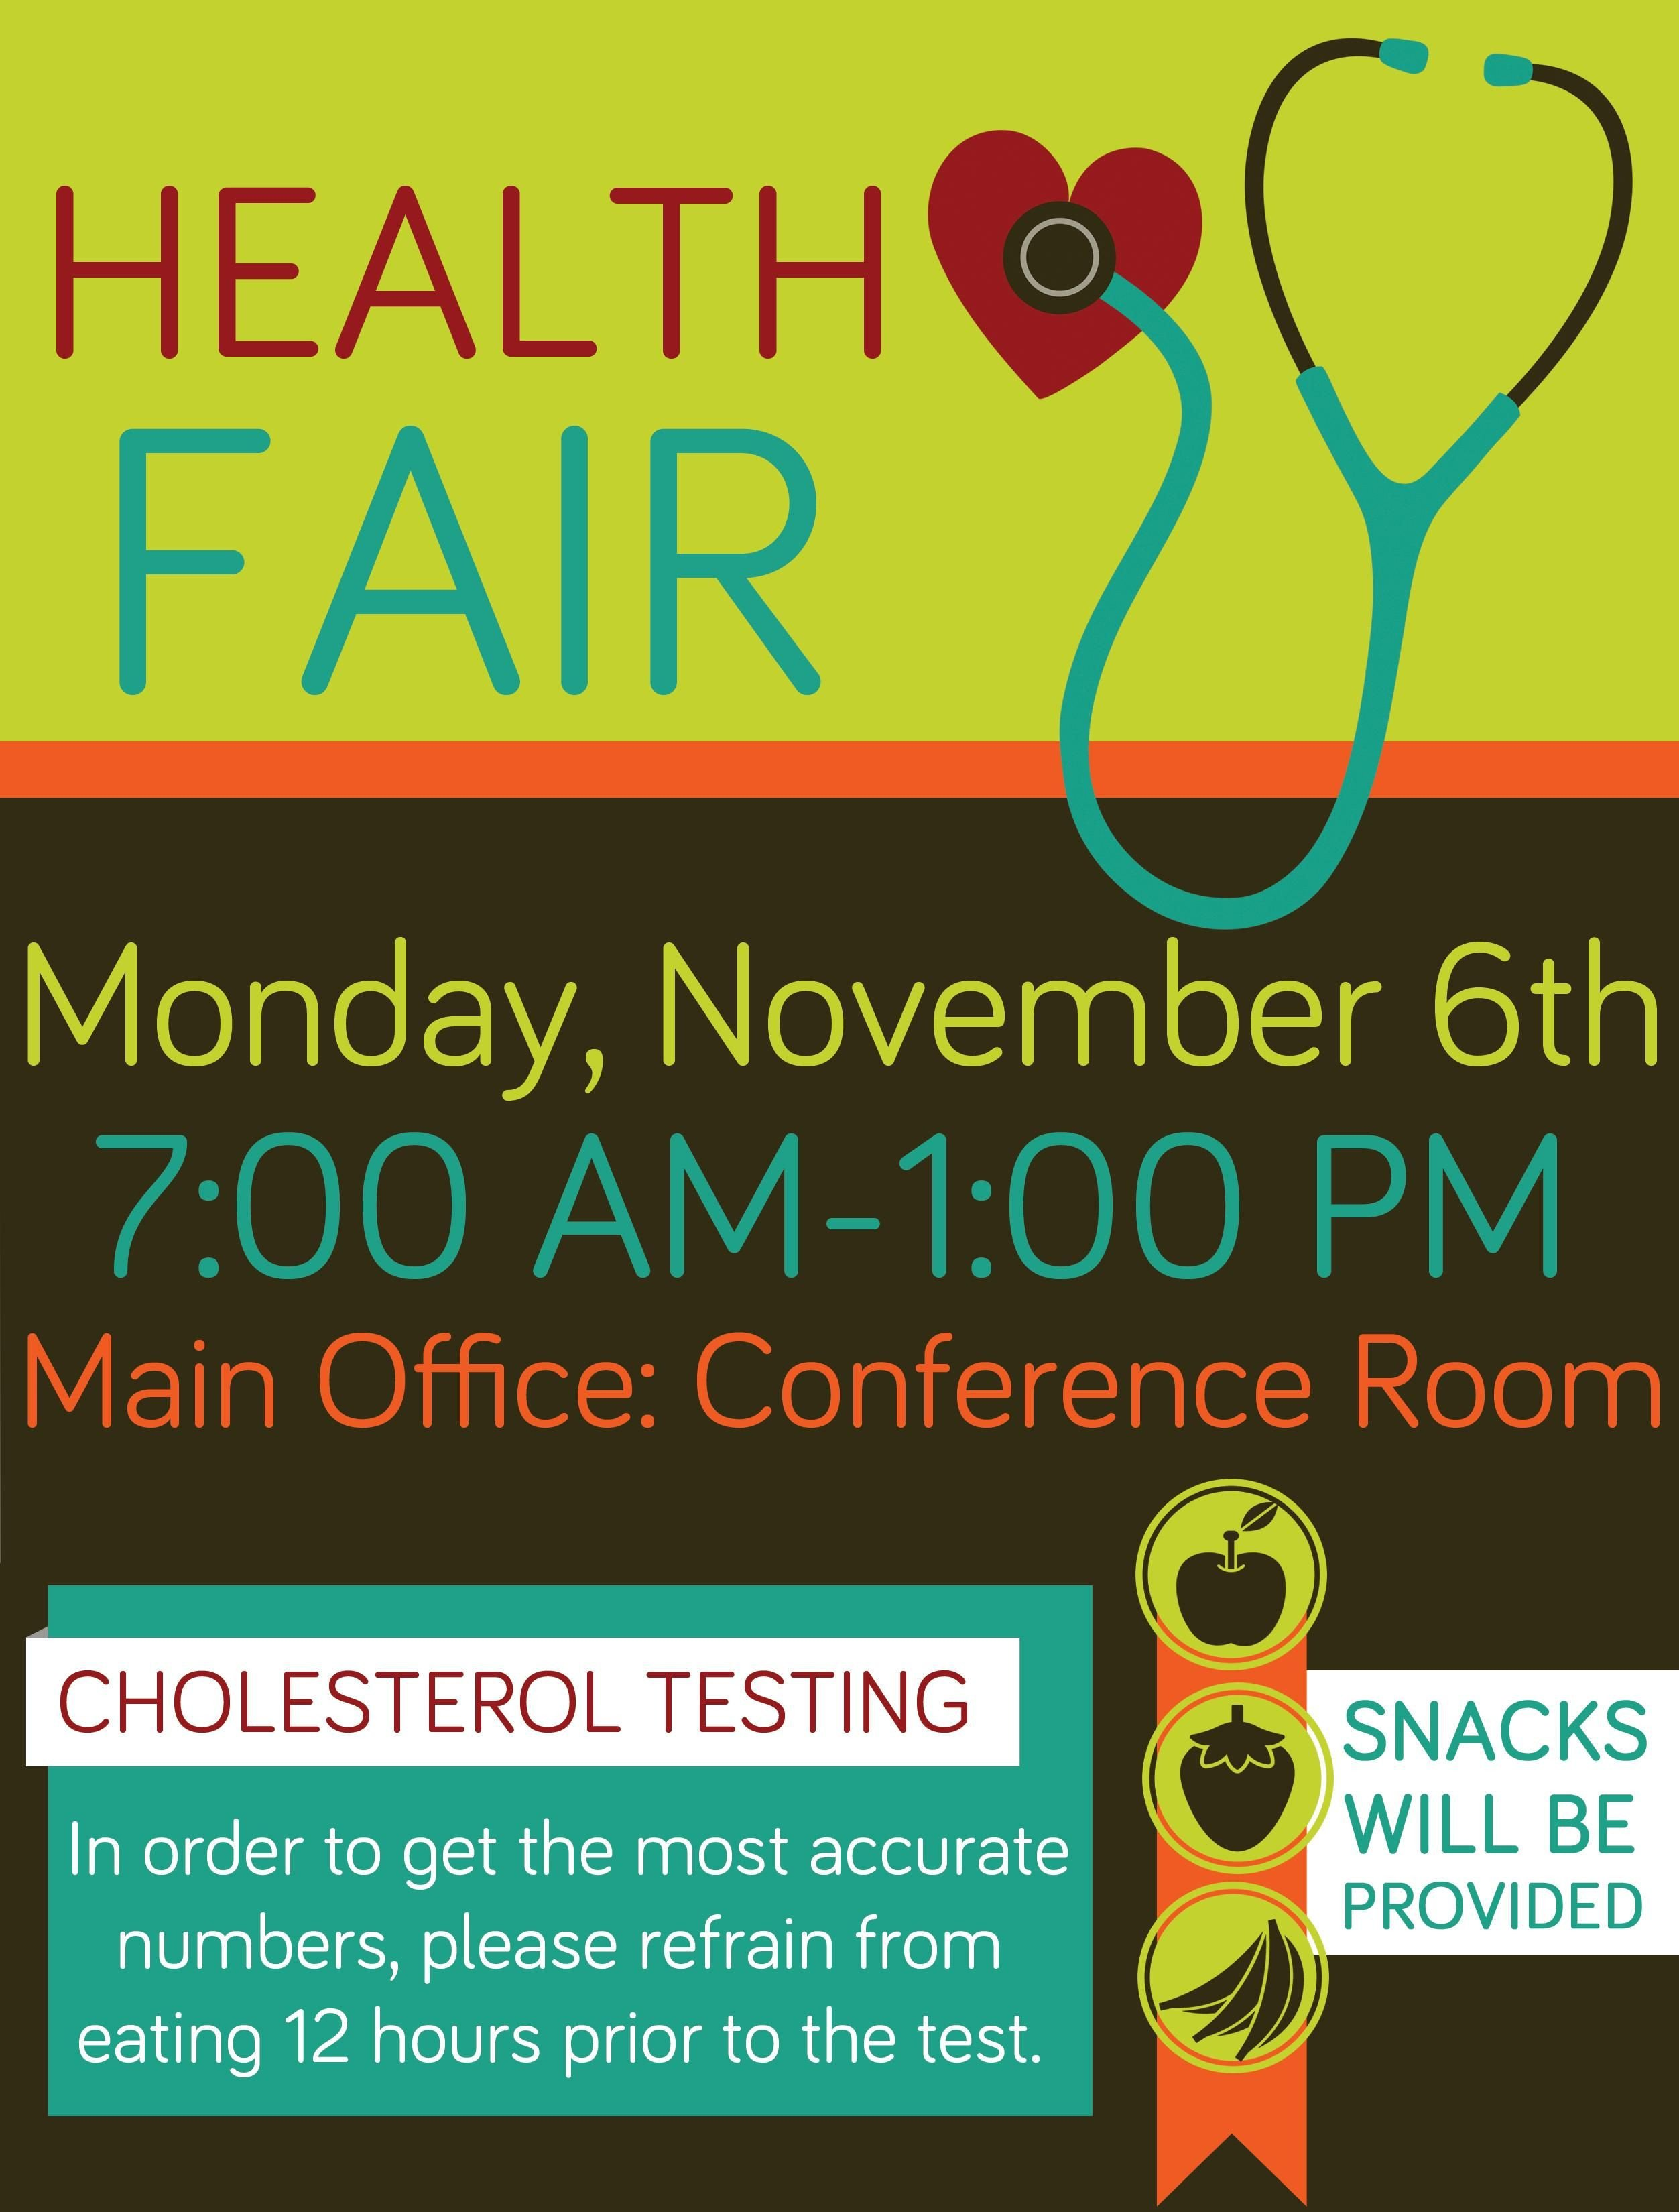 Health Fair Flyer Template Free Pany Health Fair Flyer Graphic Design School Health